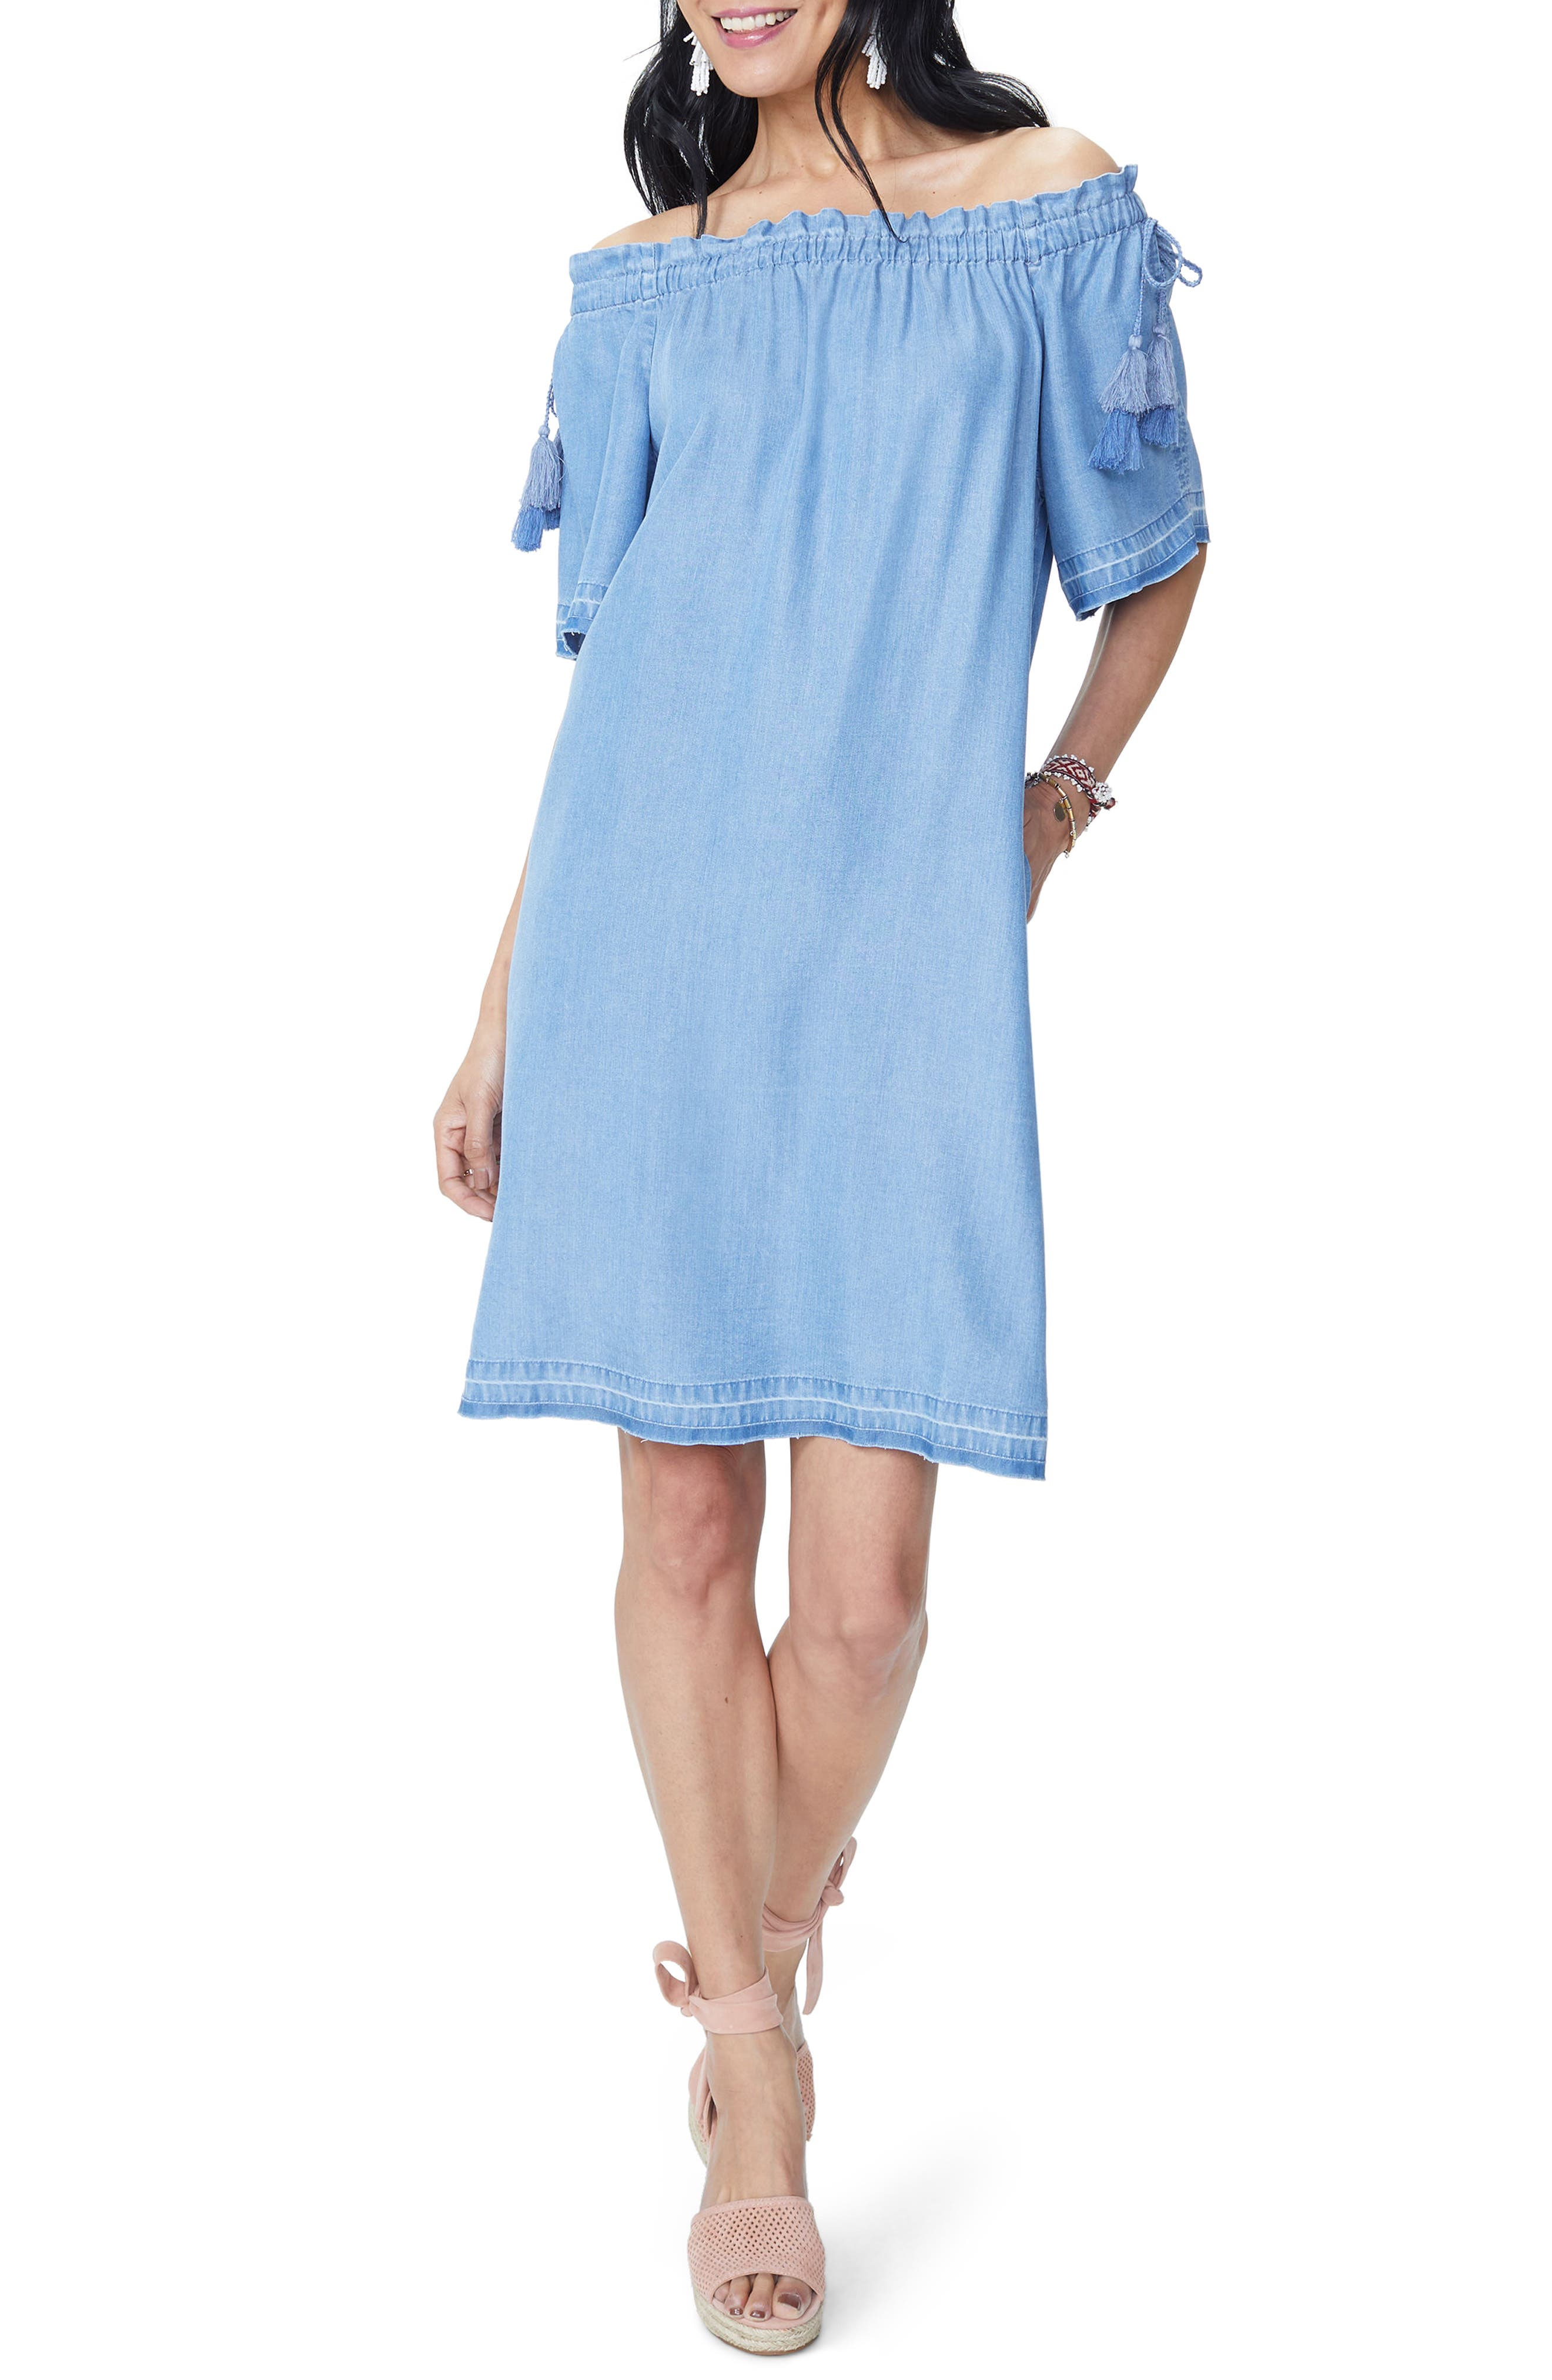 Off the Shoulder Tassel Tie Chambray Dress,                             Main thumbnail 1, color,                             465